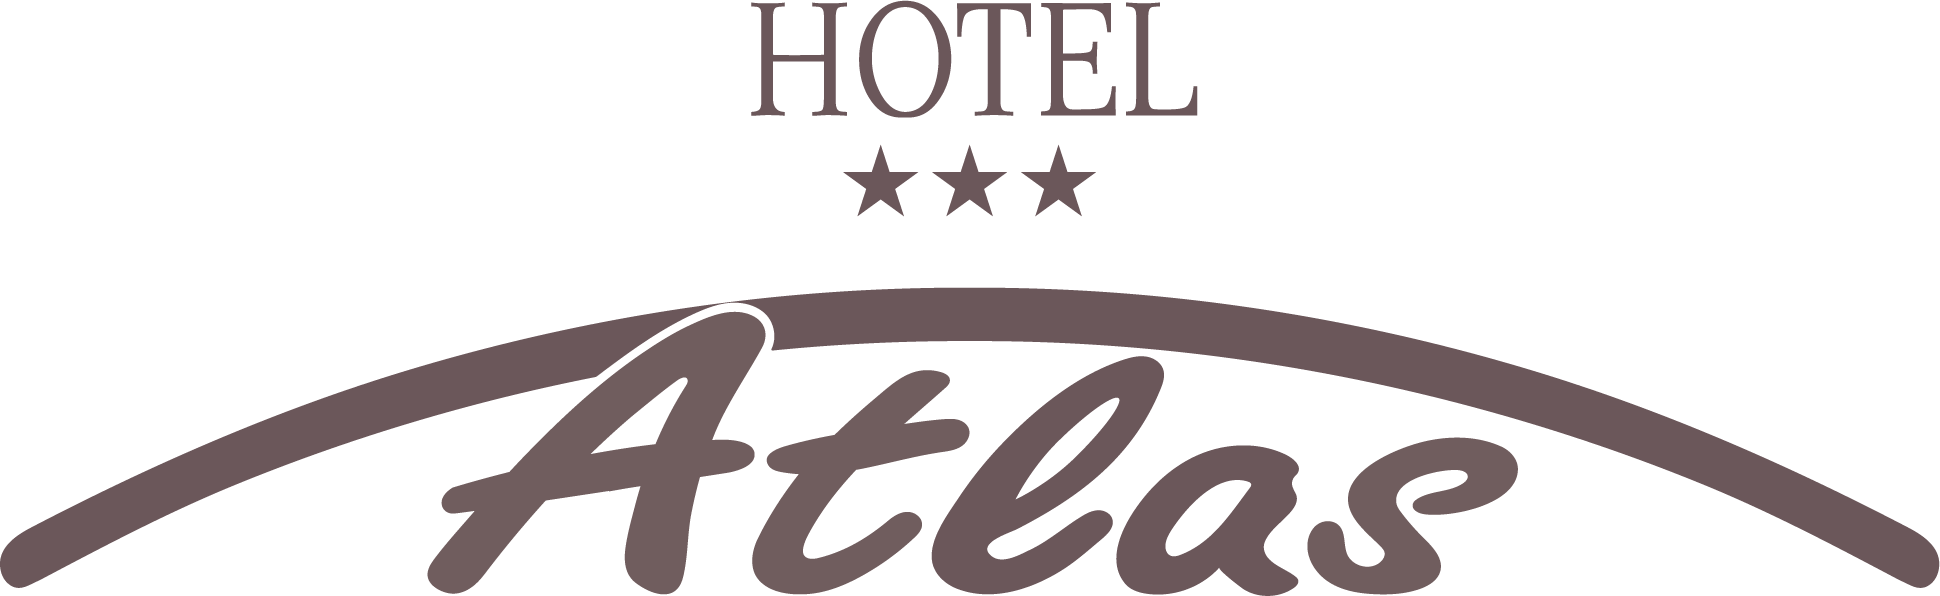 hotelatlas.be